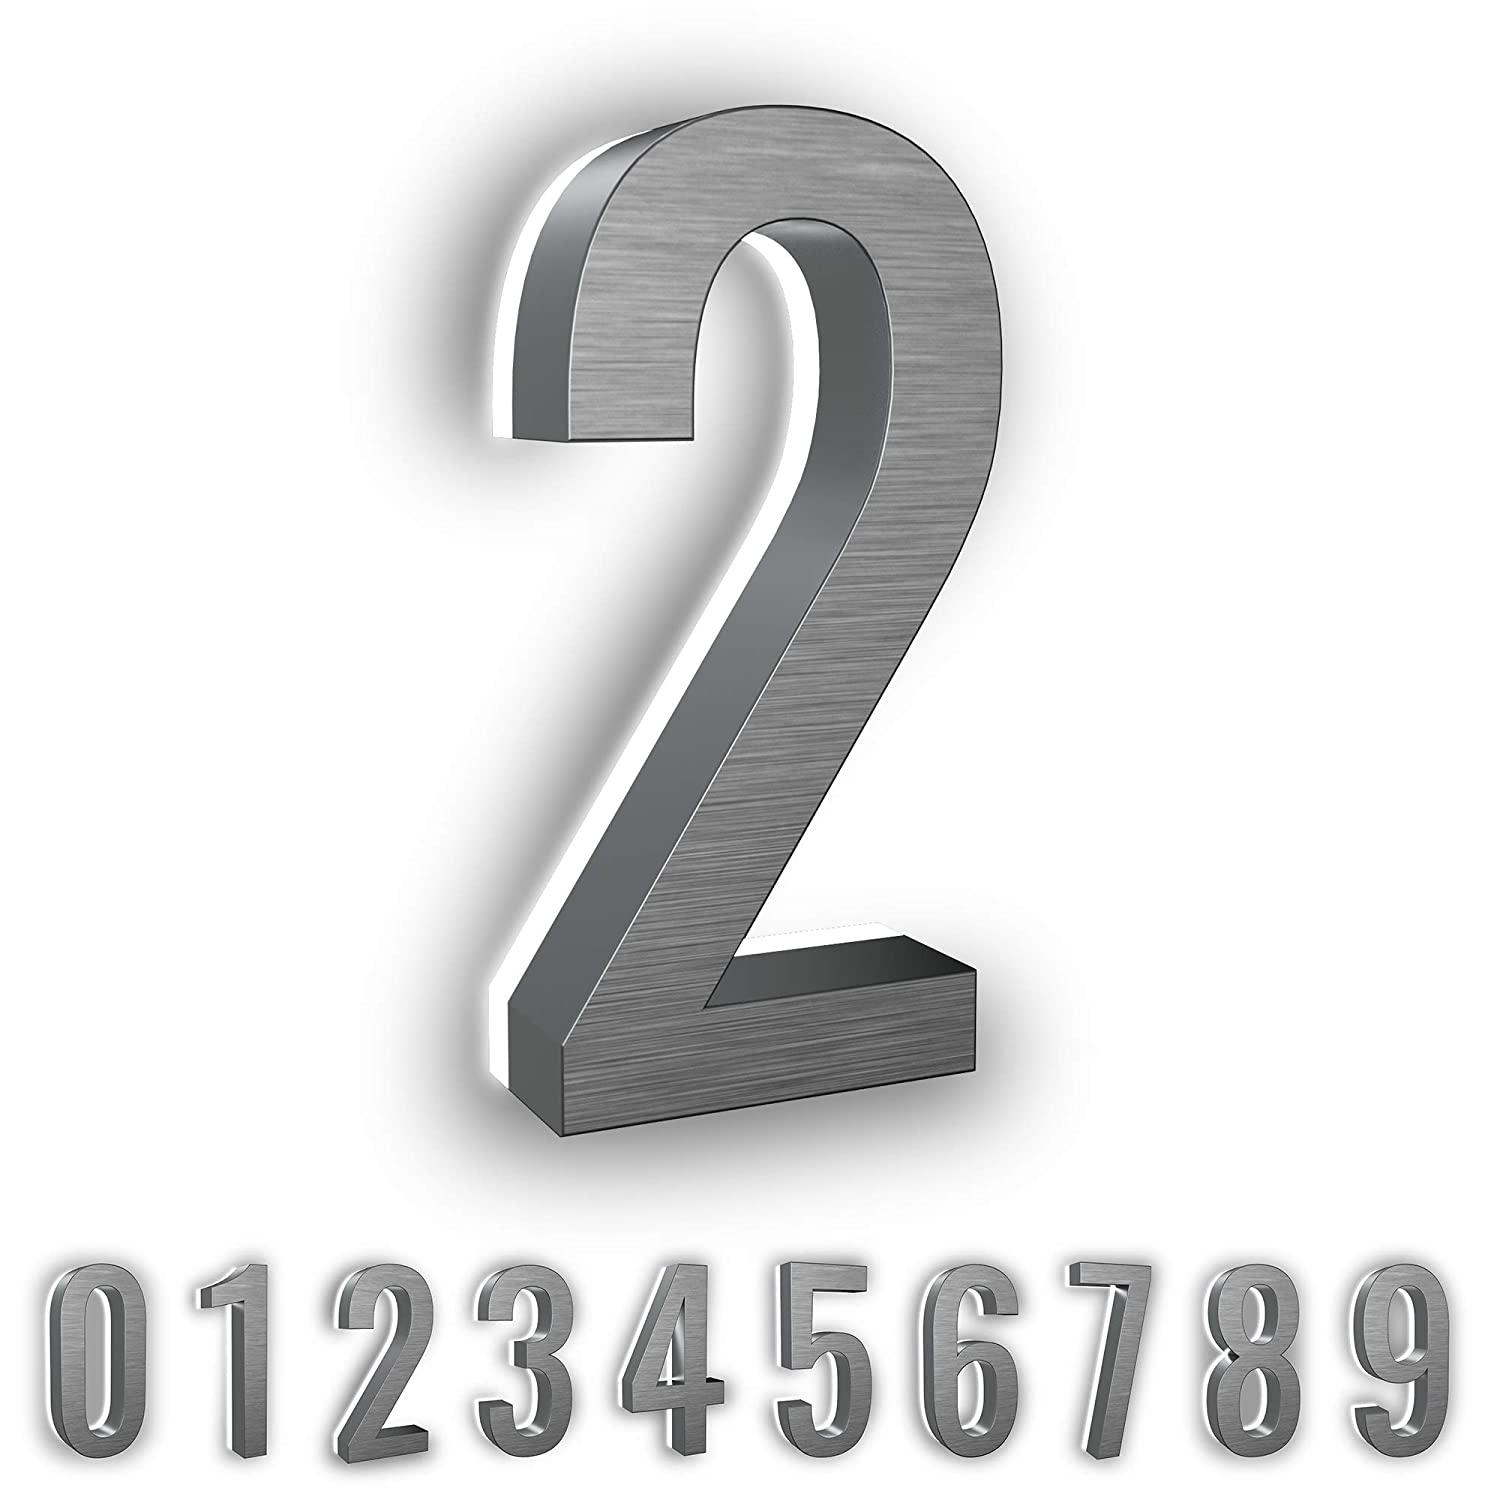 7-Inch Low-Voltage Backlit LED Address Numbers by LN LUMANUMBERS, Durable Brushed Steel Lighted House Numbers, Weather-Proof, Modern Illuminated Floating Numbers (Black, 7)